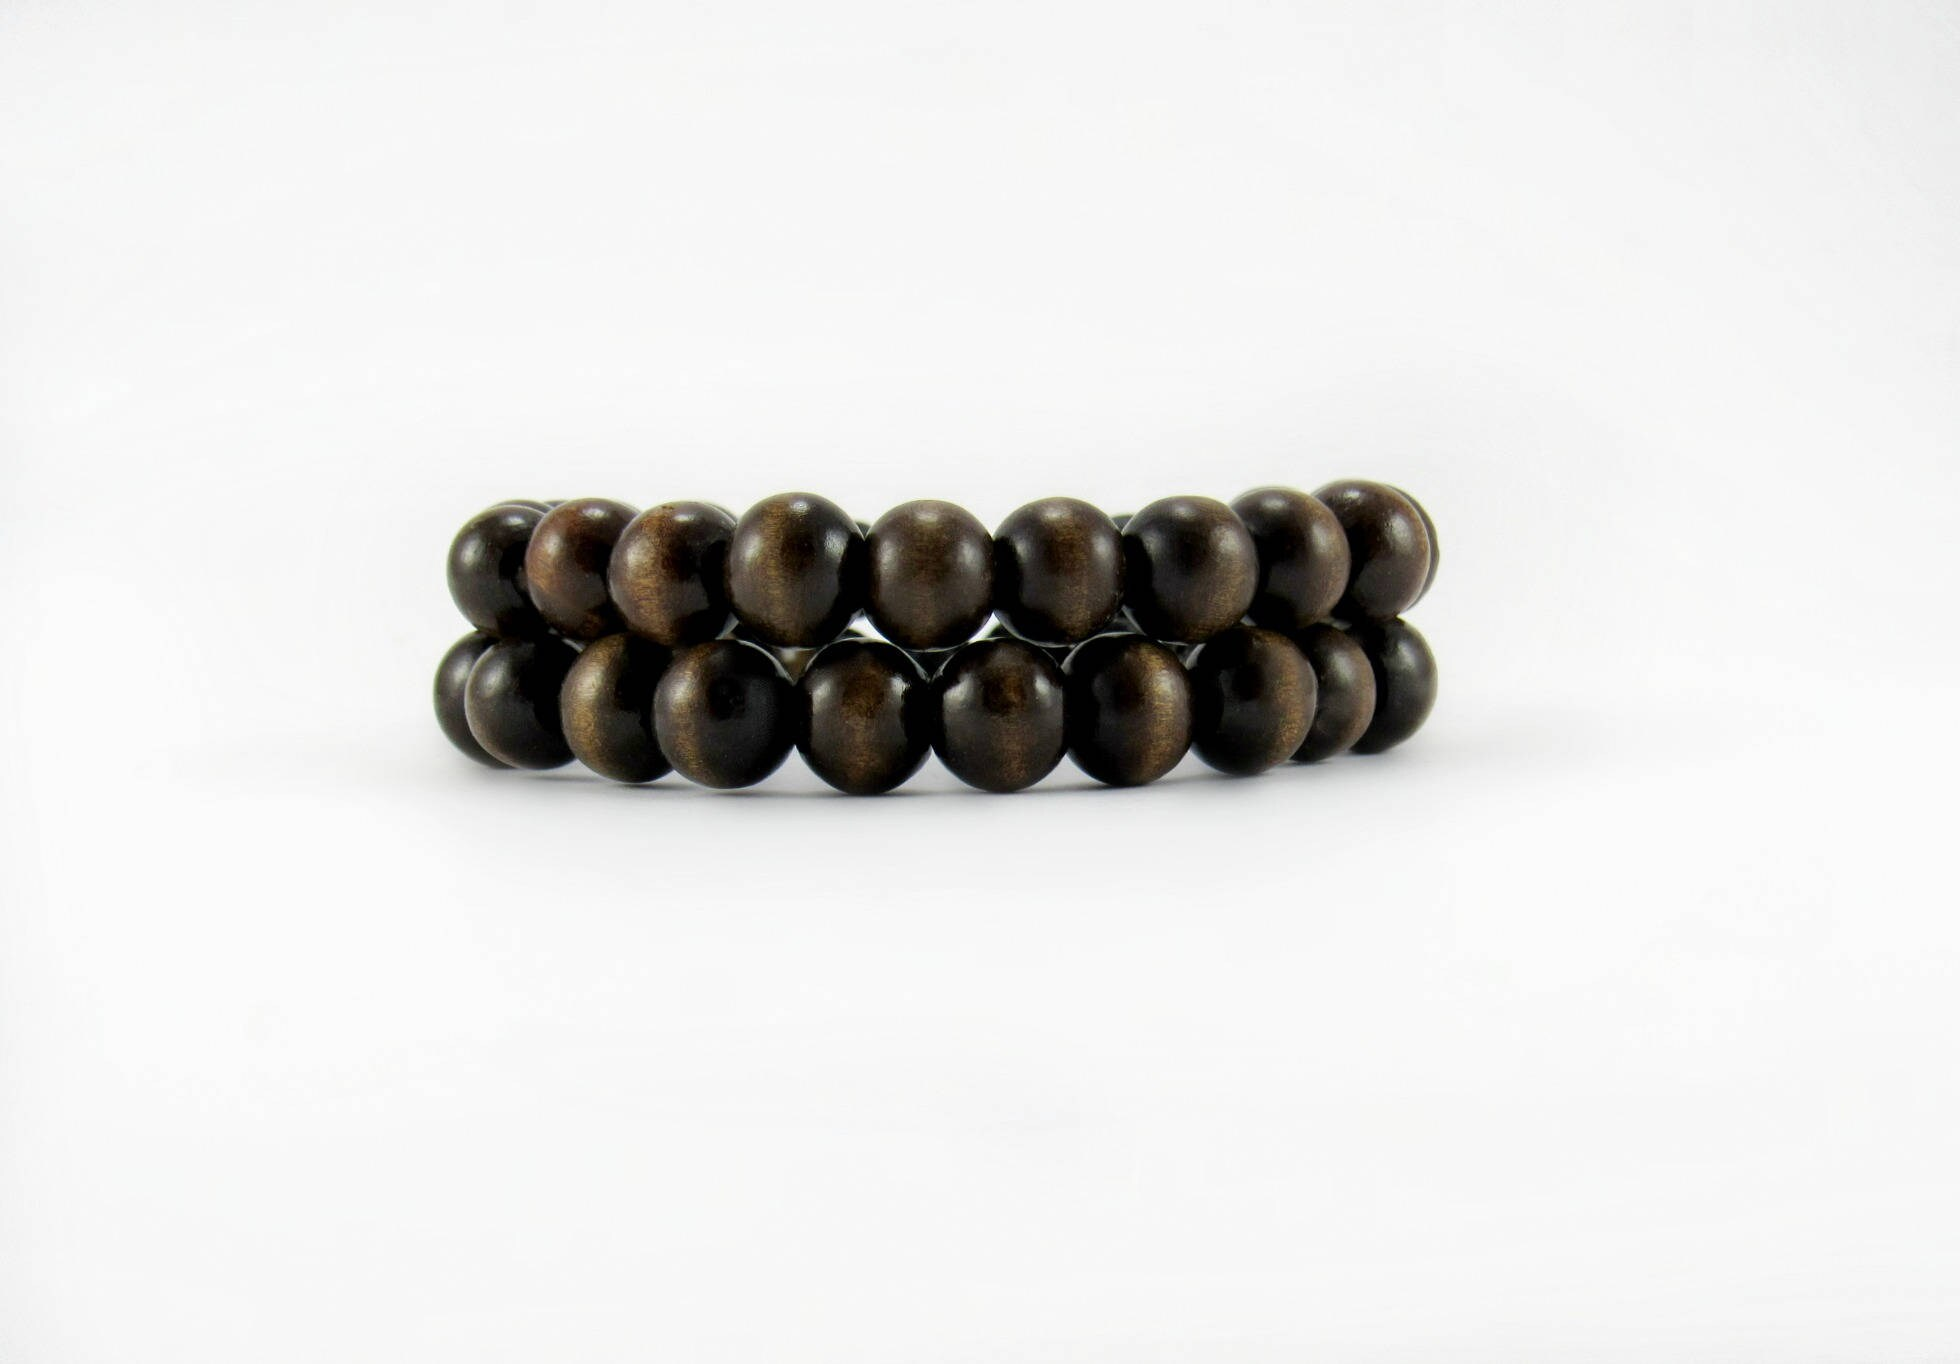 mara free charm from prayer s shipping beads in bracelets bracelet buddha wooden men head natural quality bead high item